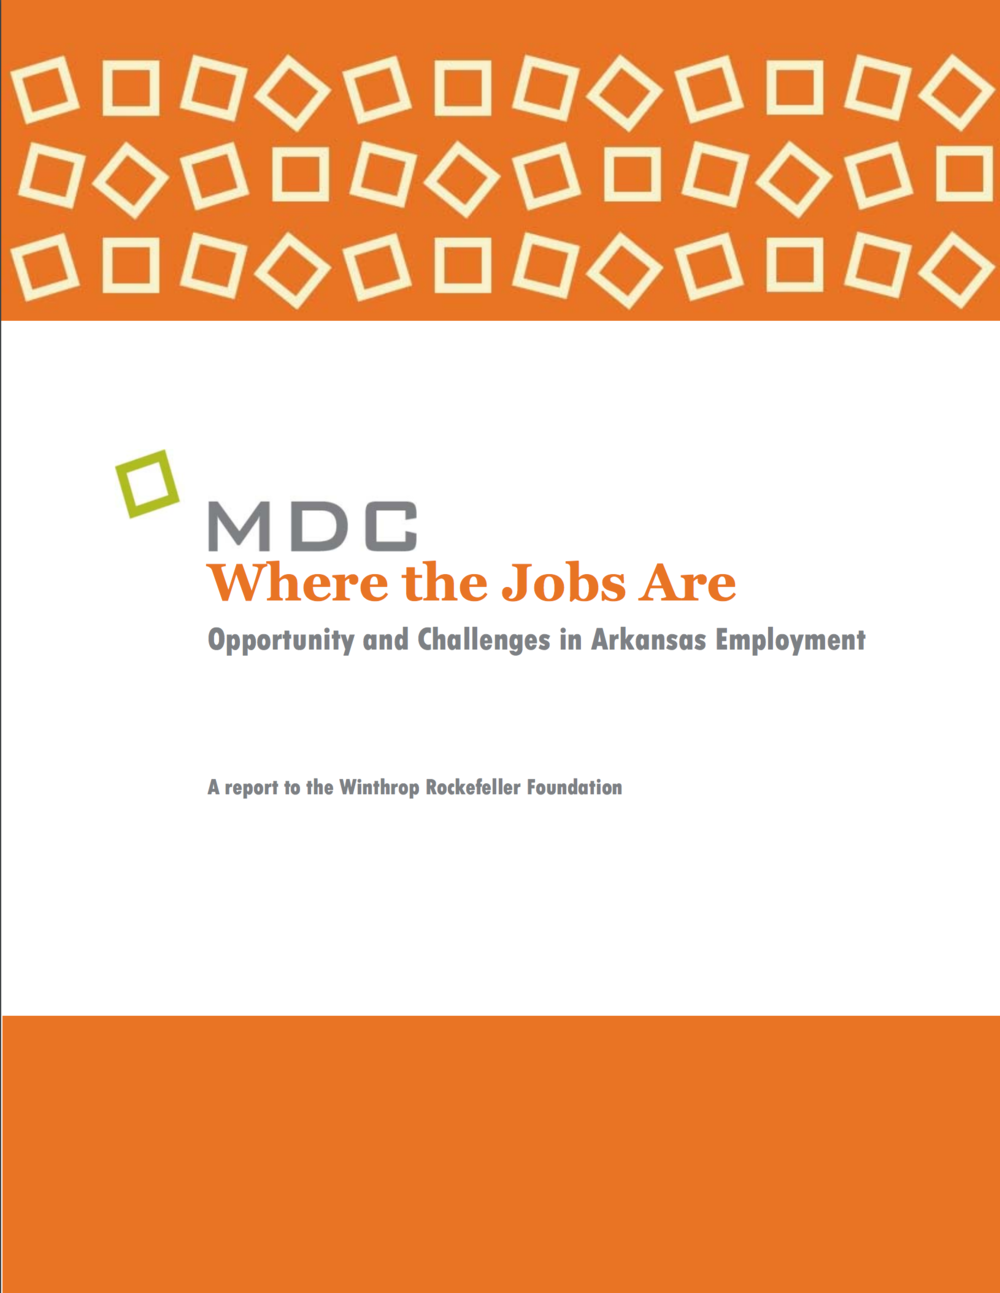 Where the Jobs Are (MDC)